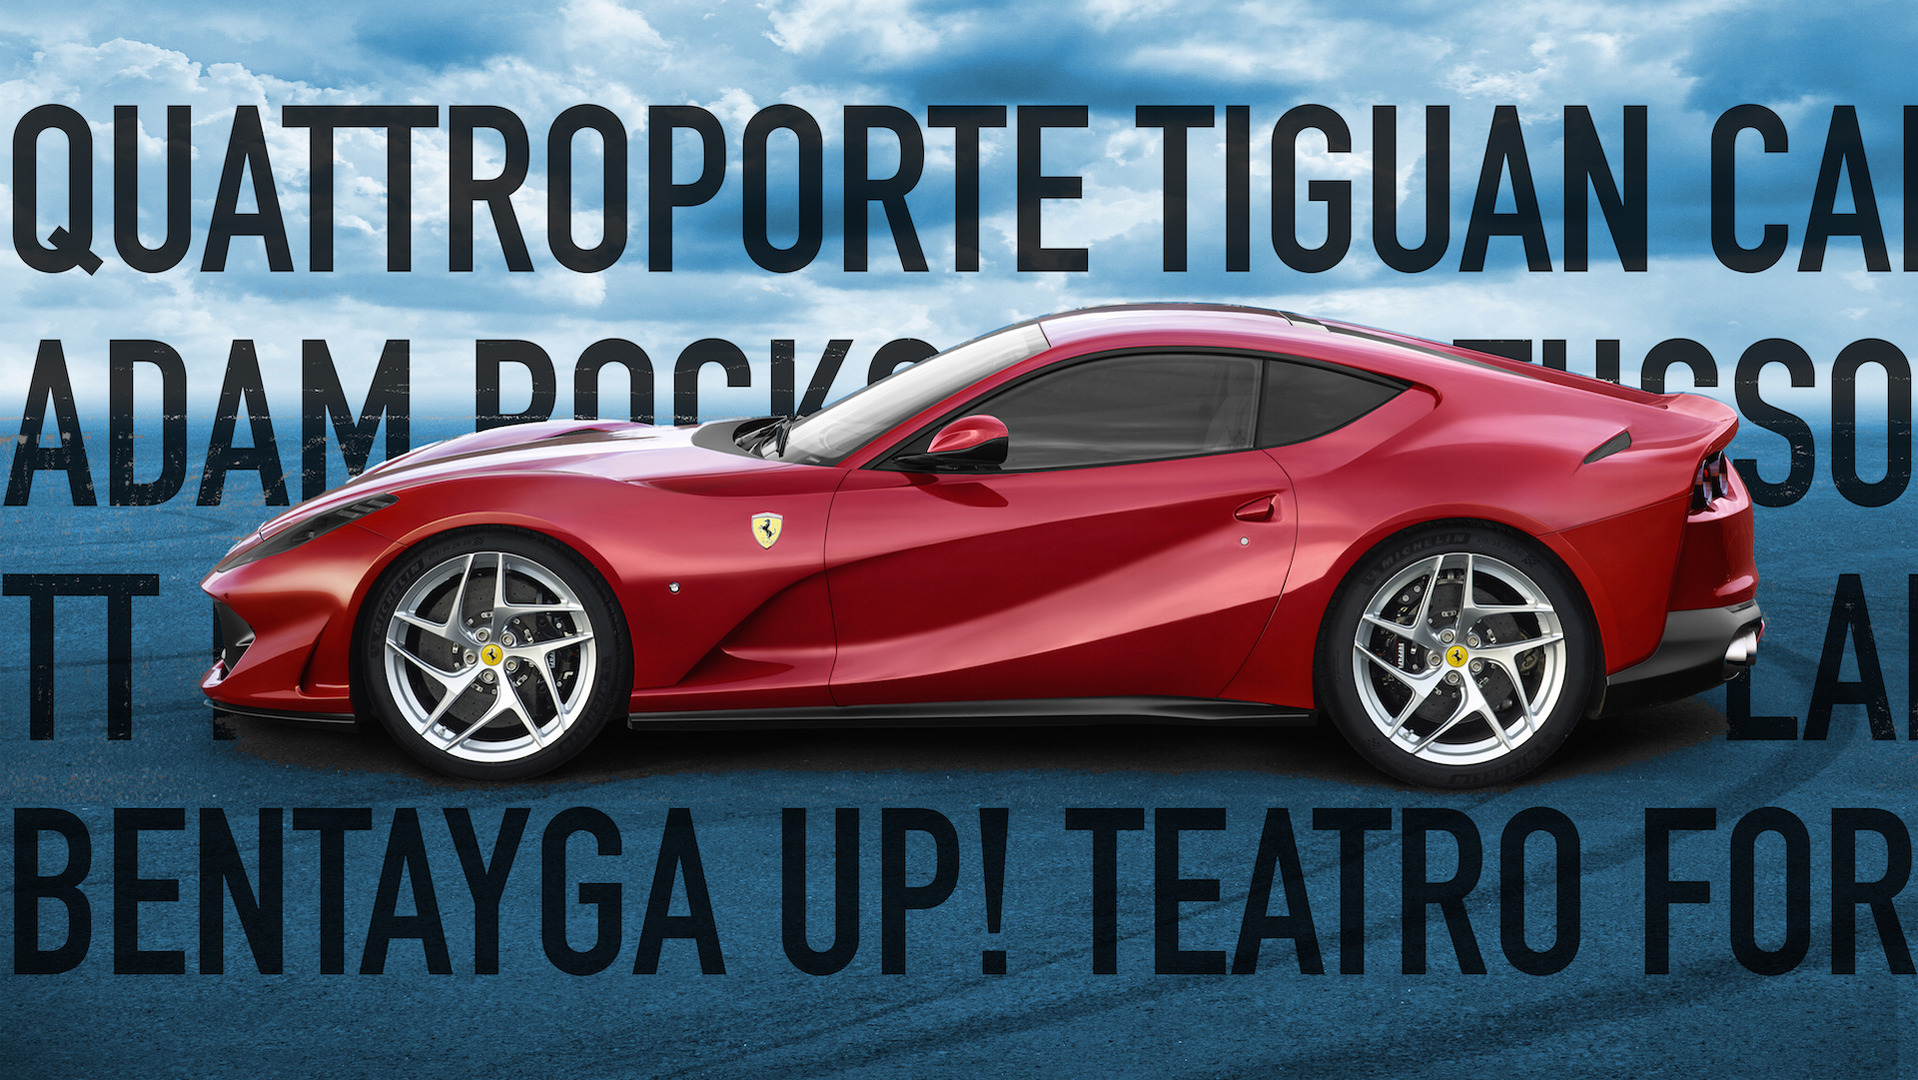 Cars With Names As Bad Or Worse Than Ferrari Superfast